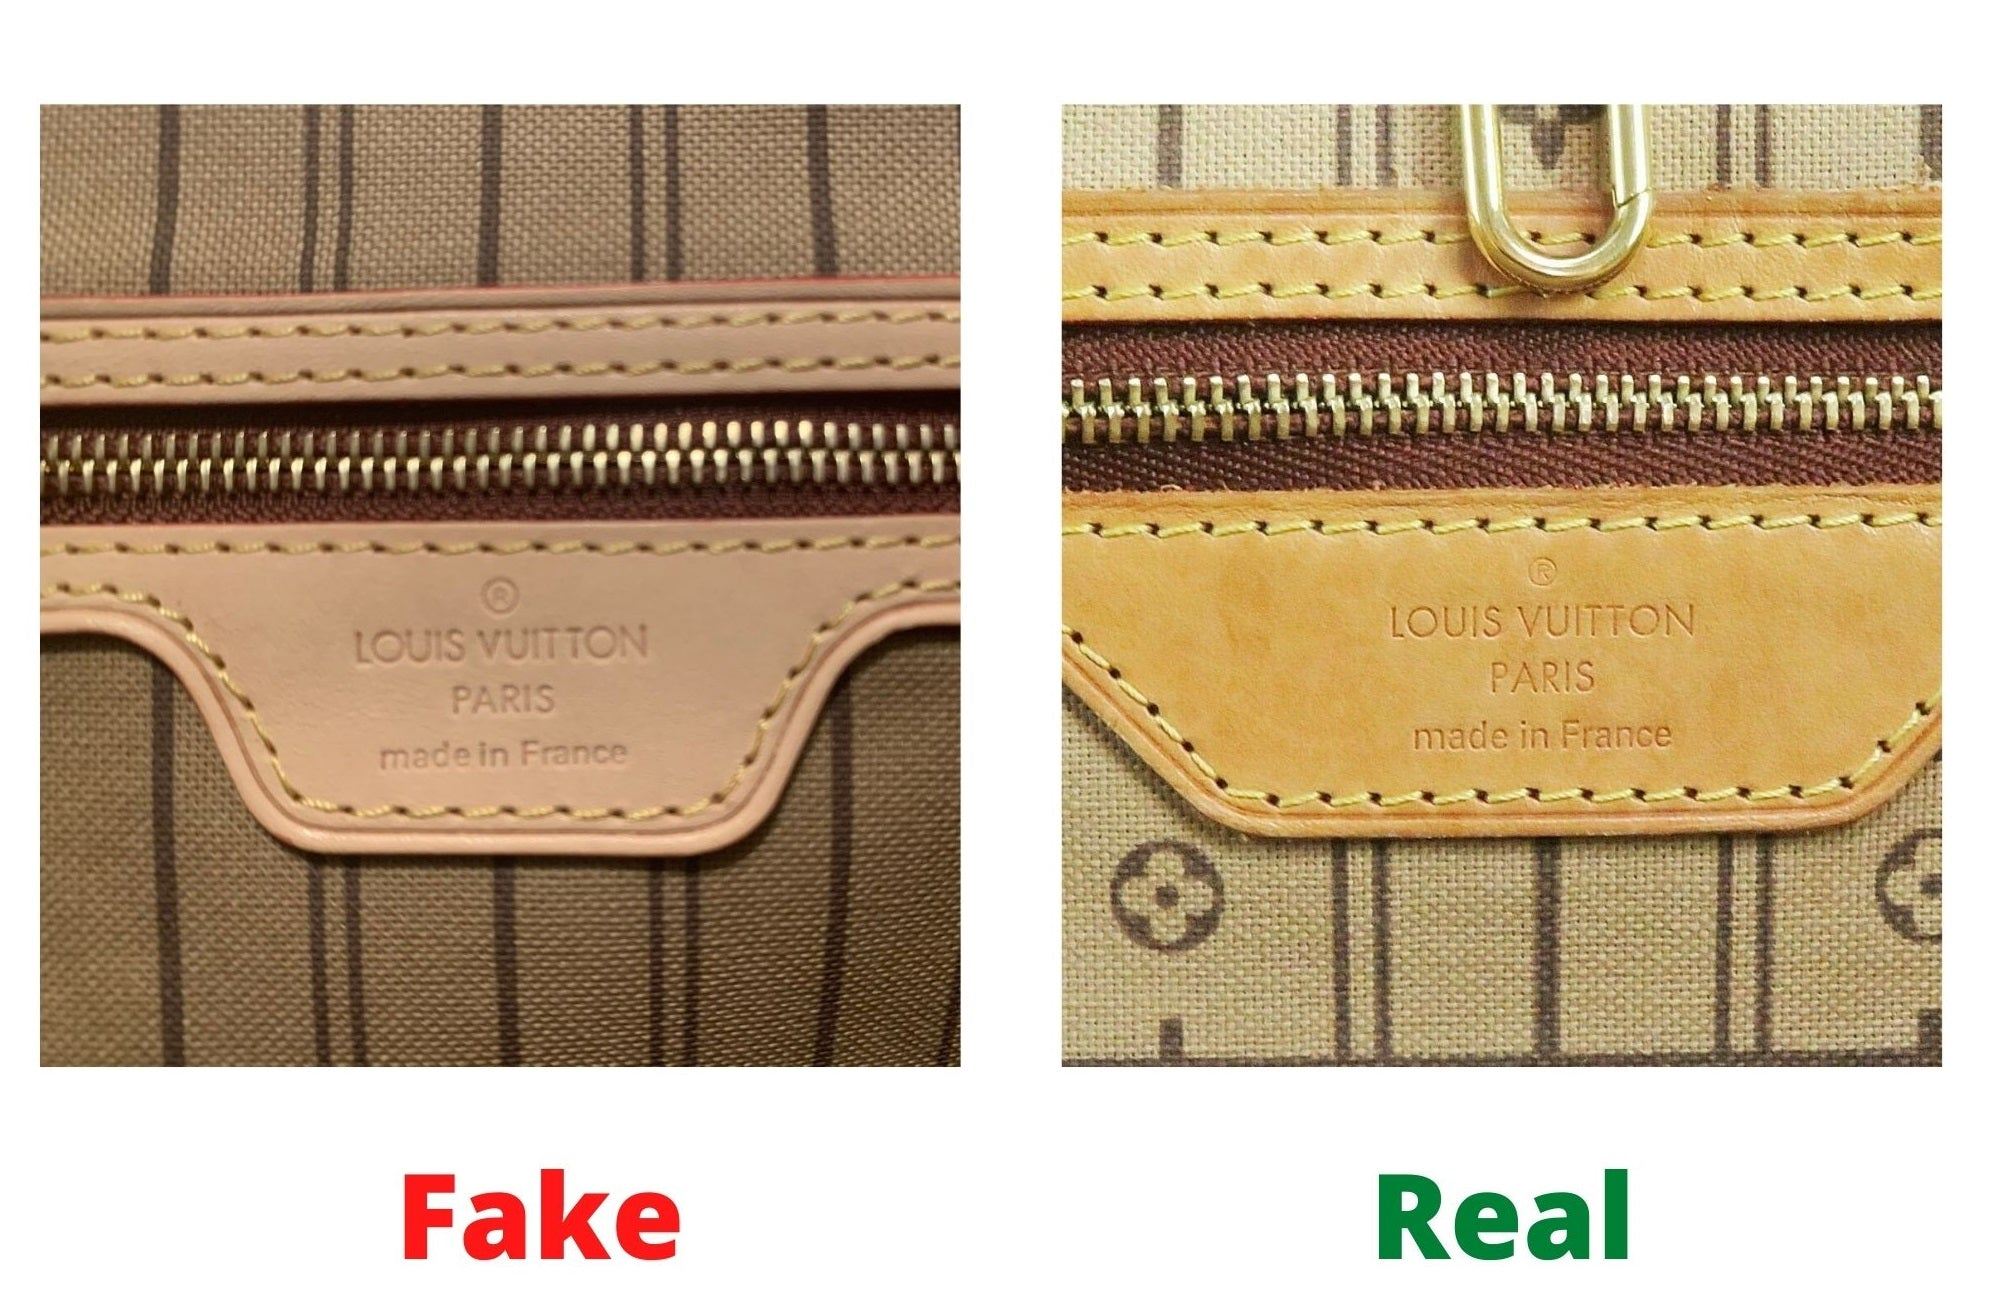 Fake Louis Vuitton Neverfull vs Real: Important Details You Should Definitely Pay Attention To (With Photo Examples) fake vs real neverfull monogram heat stamp